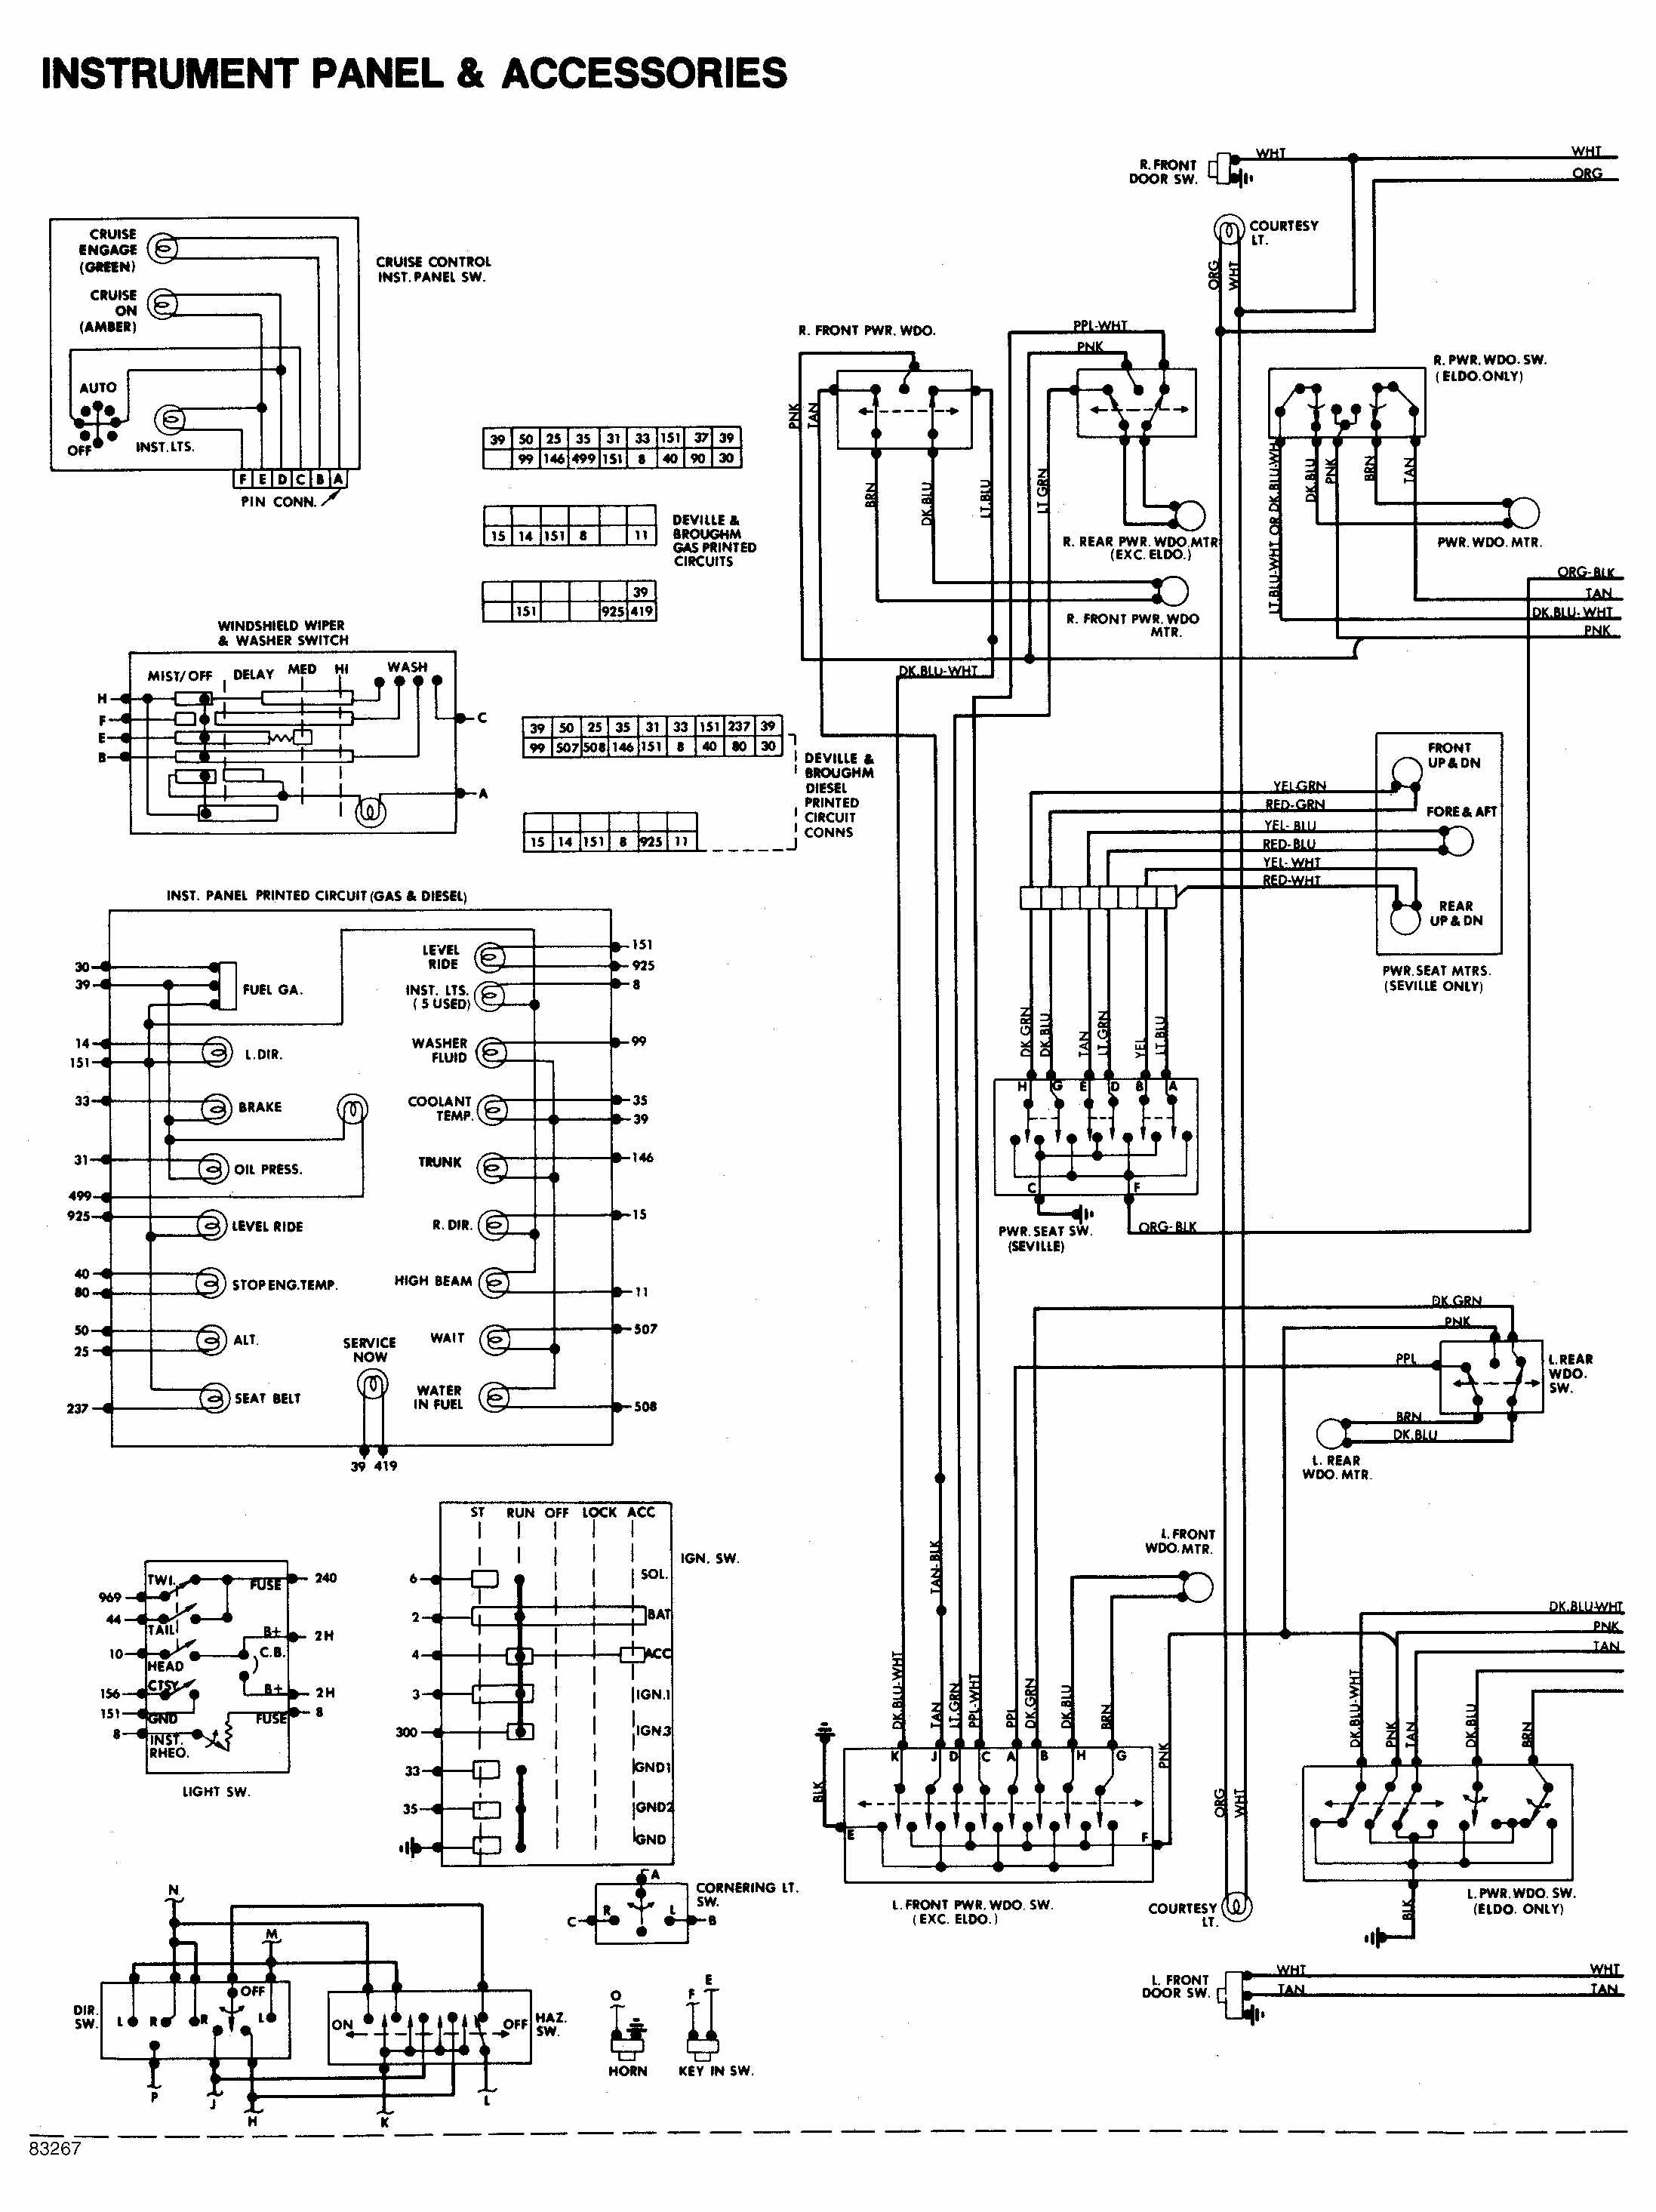 Peachy Smartart Embedded Media Flying V Wiring Diagram New Model Wiring Wiring 101 Mecadwellnesstrialsorg